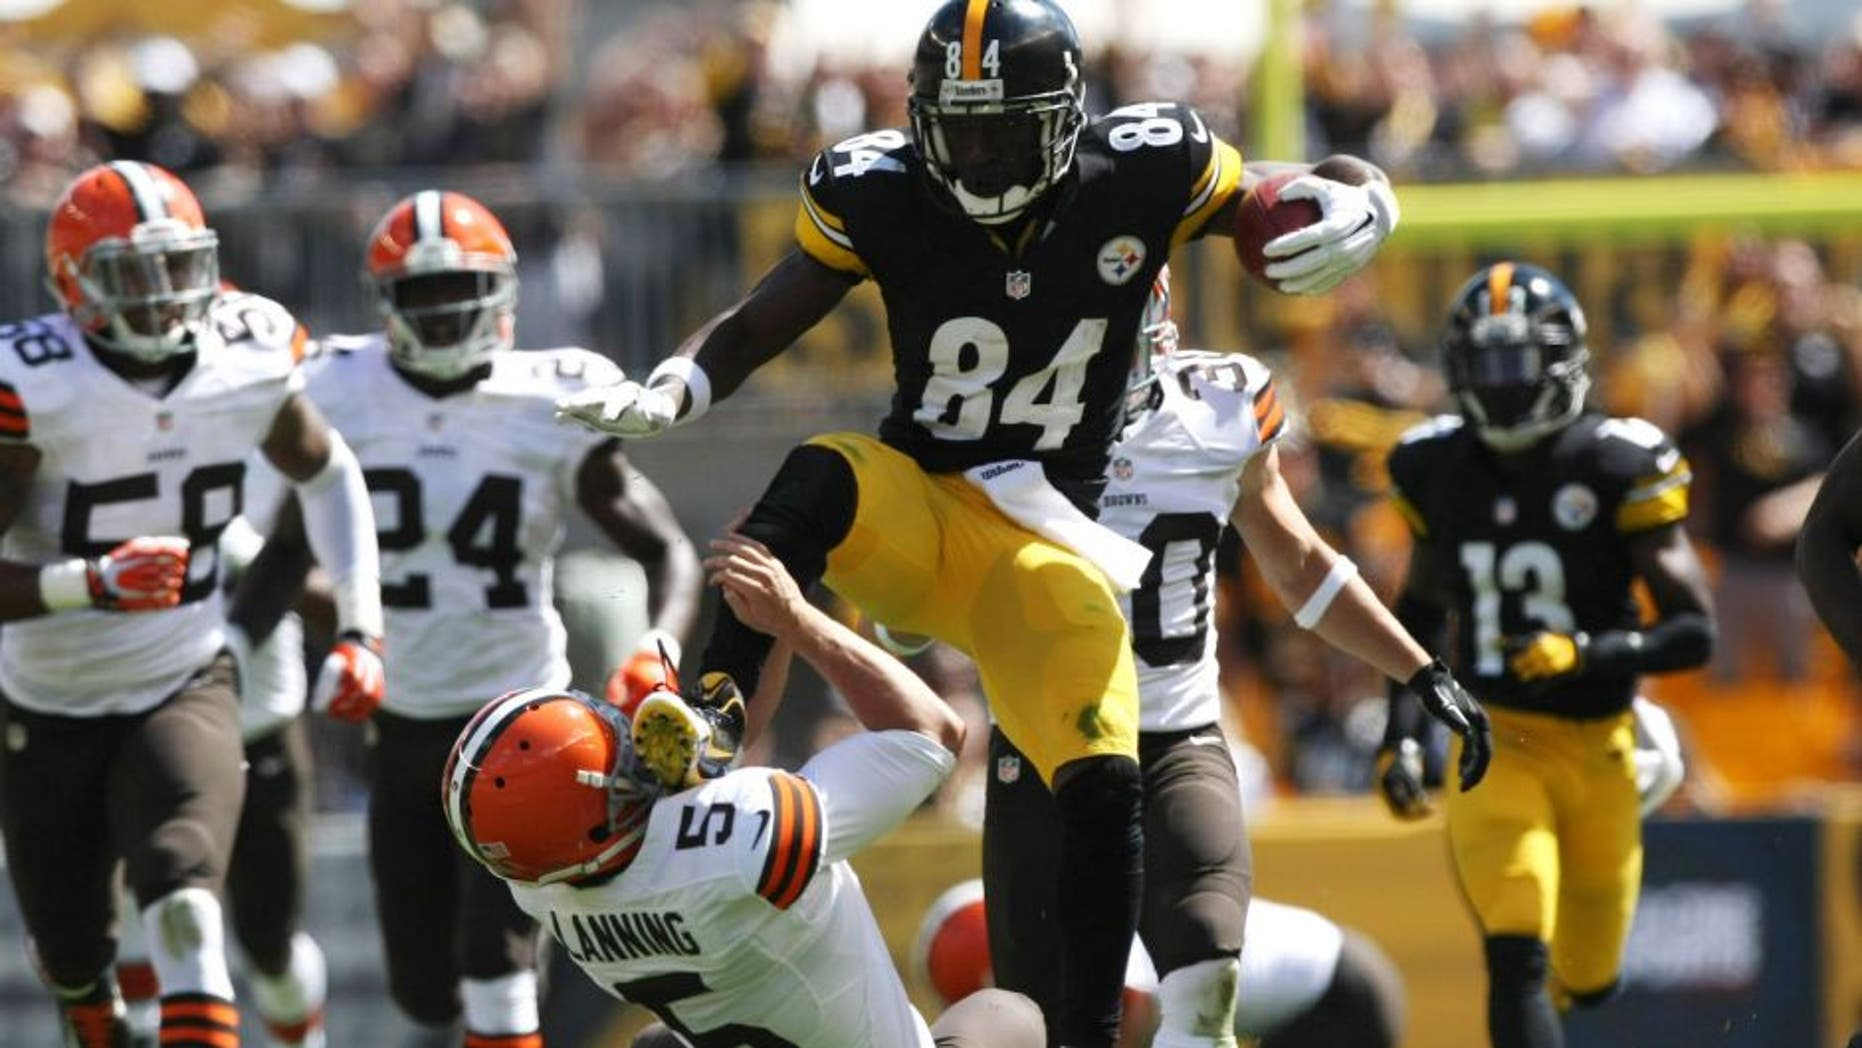 Sep 7, 2014; Pittsburgh, PA, USA; Pittsburgh Steelers wide receiver Antonio Brown (84) runs over Cleveland Browns punter Spencer Lanning (5) during the first half at Heinz Field. Brown was flagged on the play. Mandatory Credit: Jason Bridge-USA TODAY Sports